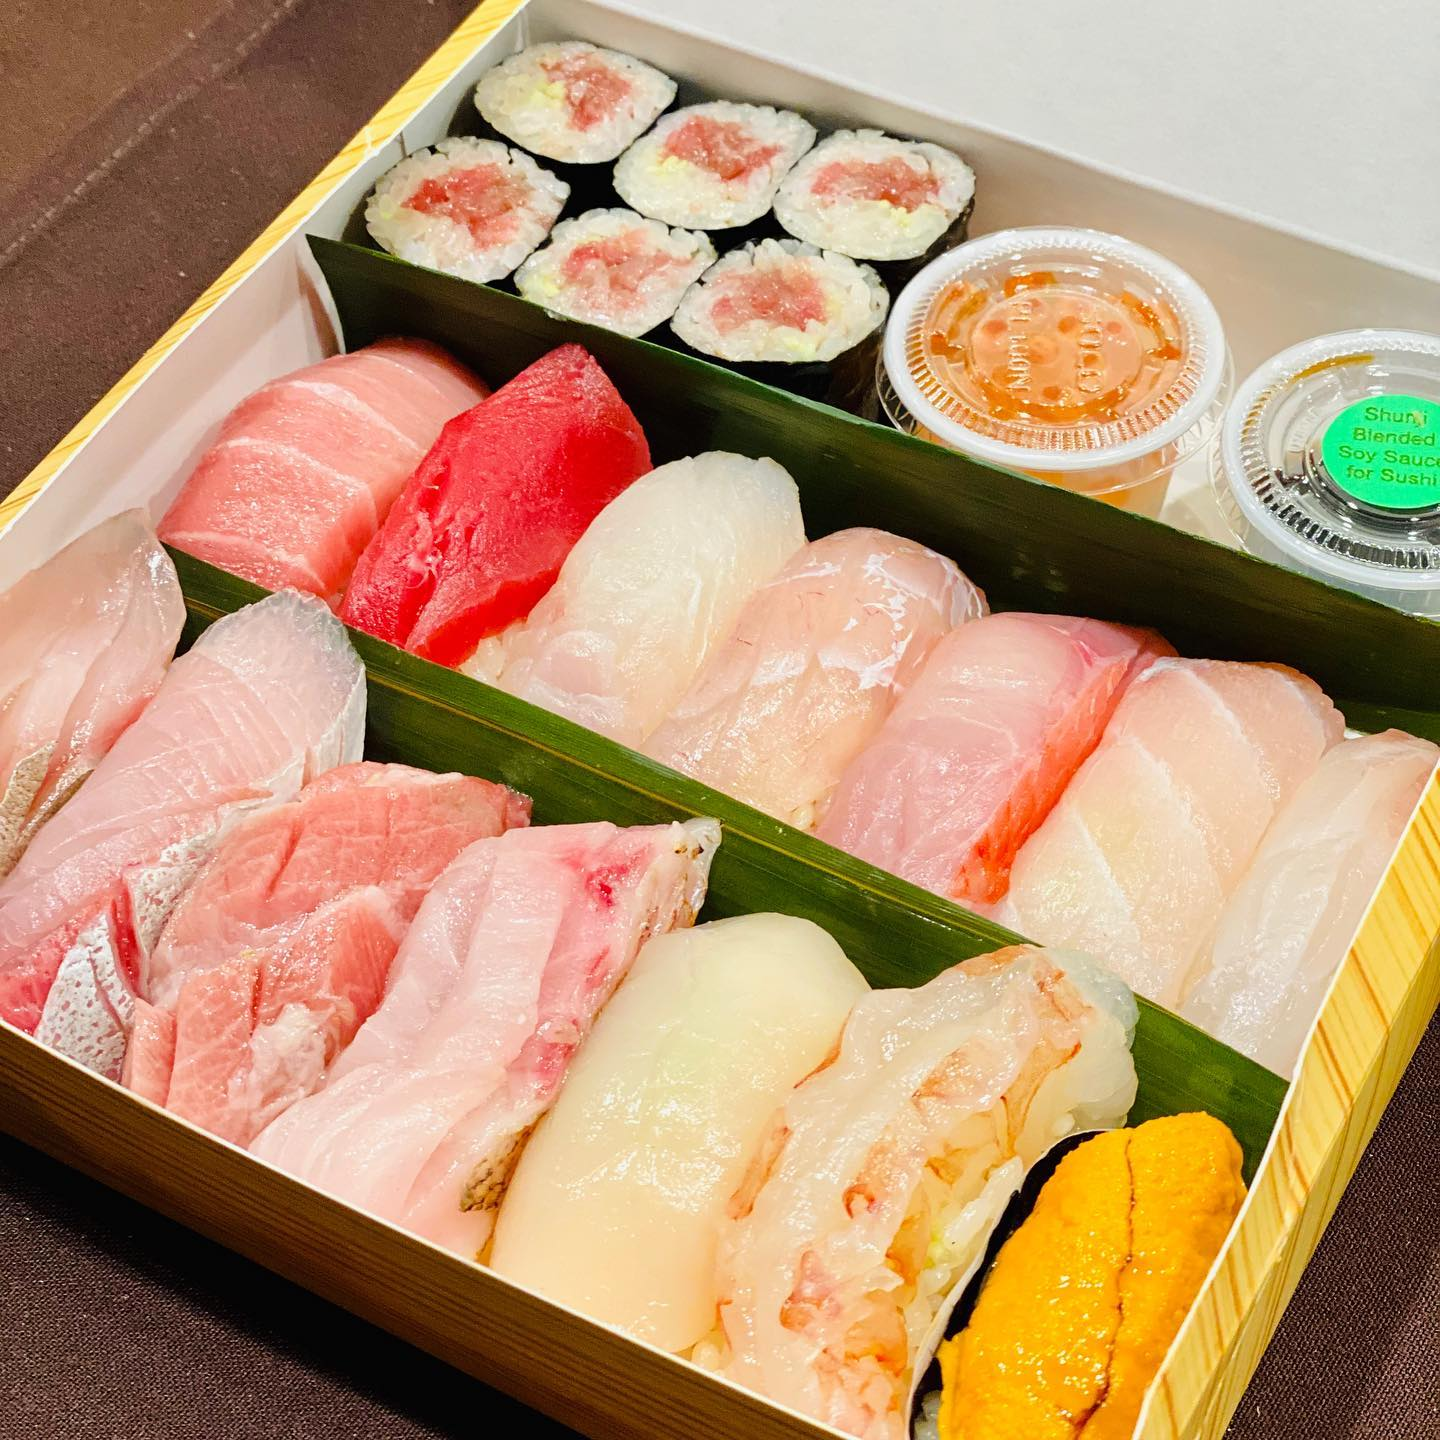 Assorted sushi from Shunji in Los Angeles